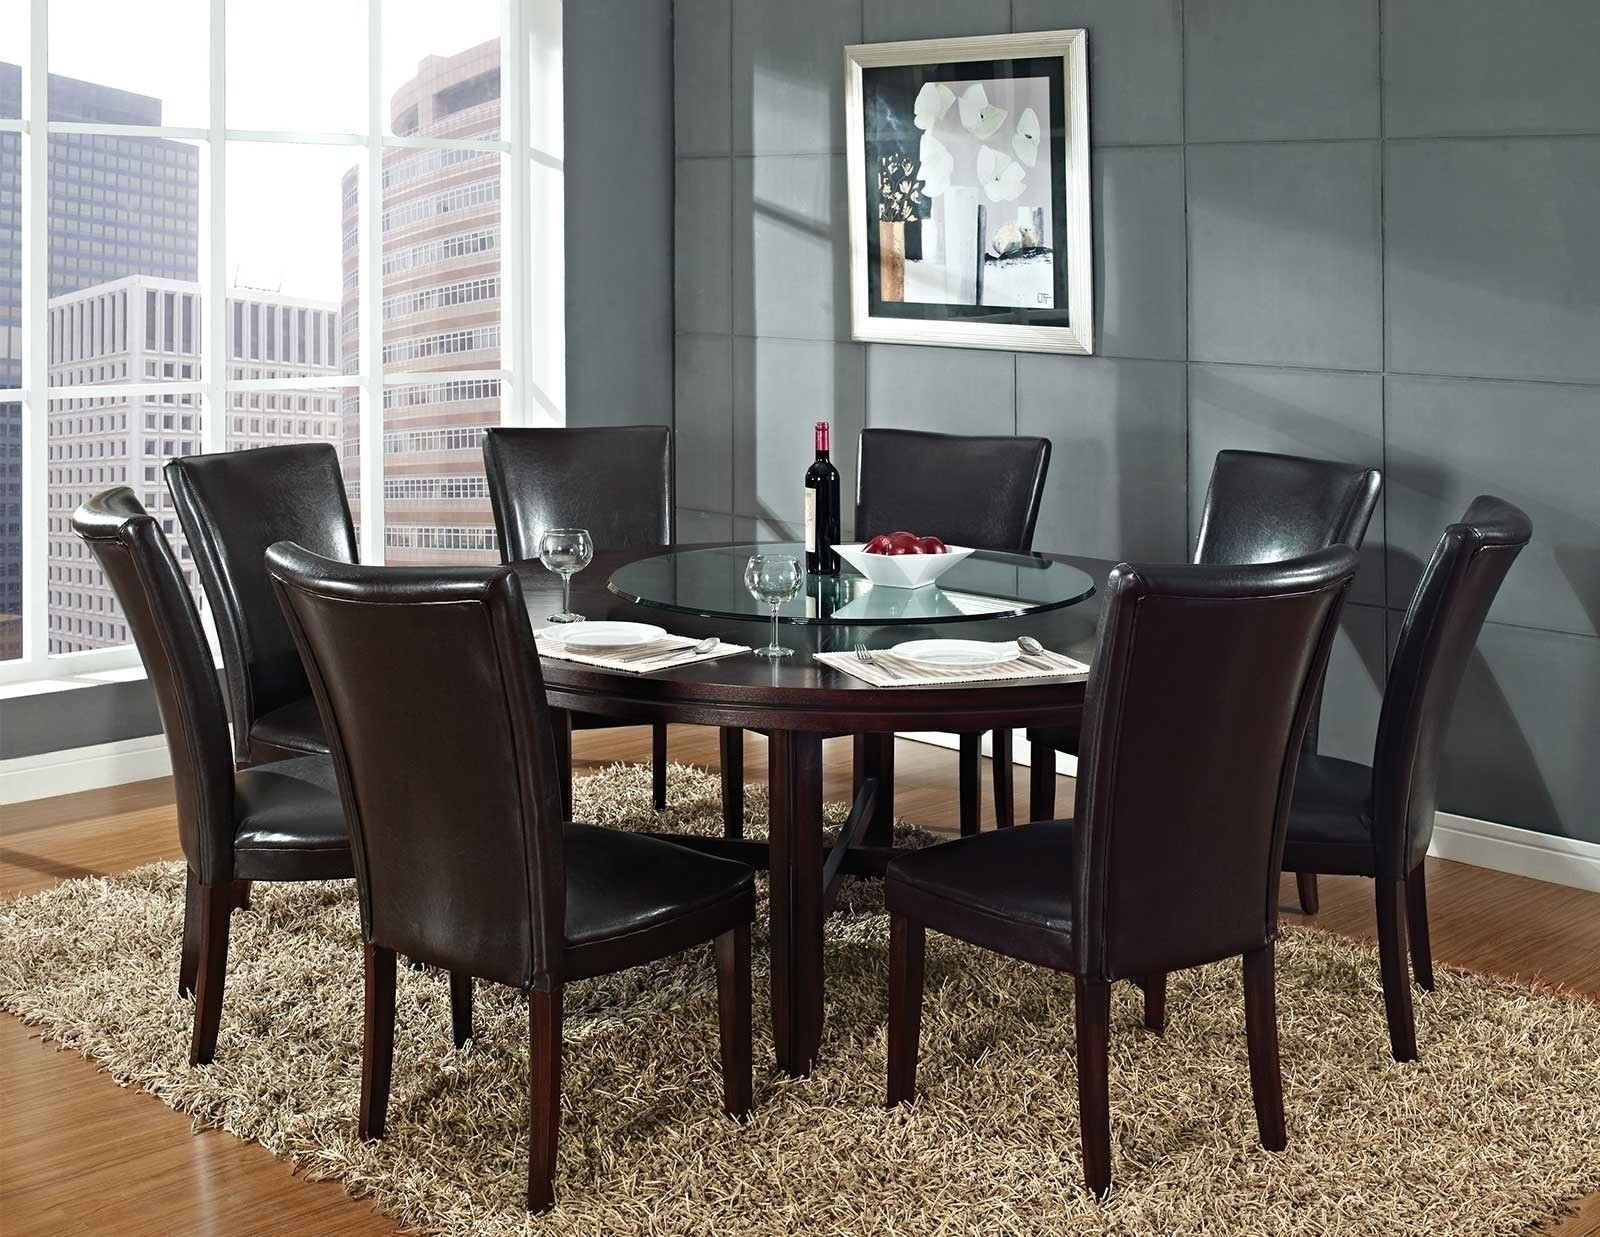 8 Seater Round Dining Table Sets • Table Setting Ideas pertaining to Well-known 8 Seater Round Dining Table And Chairs